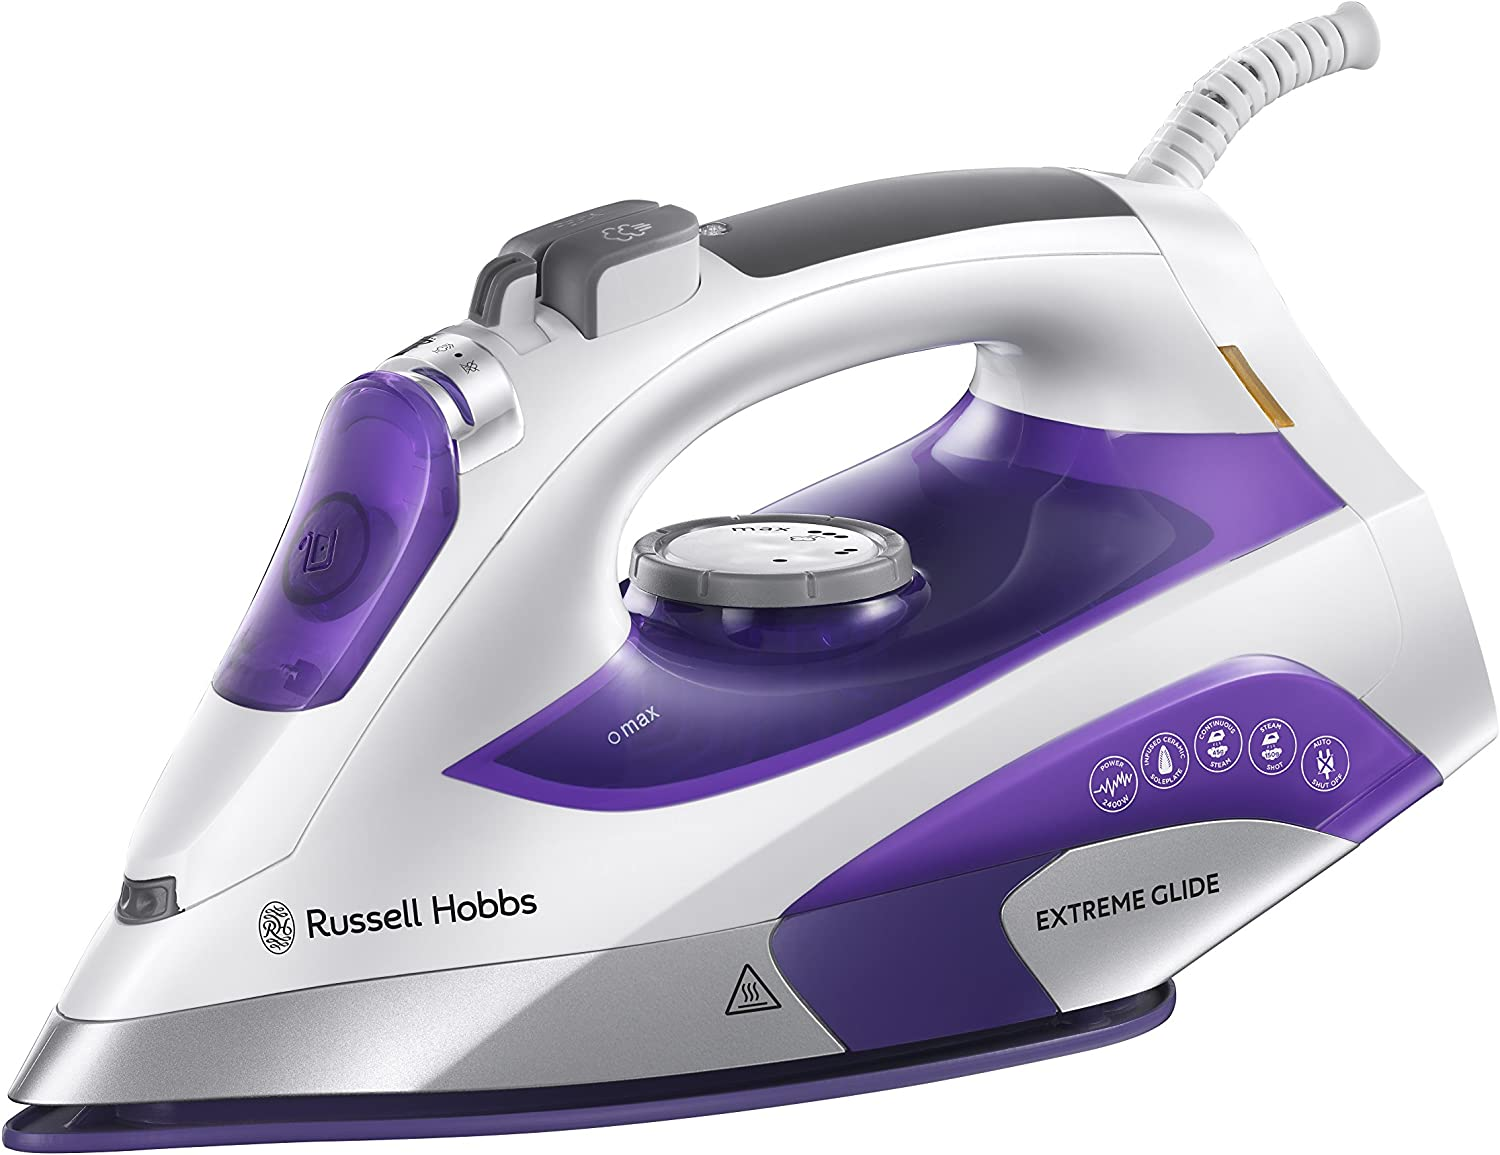 Russell Hobbs Extreme Glide Iron 21530 White and Purple 2400 W